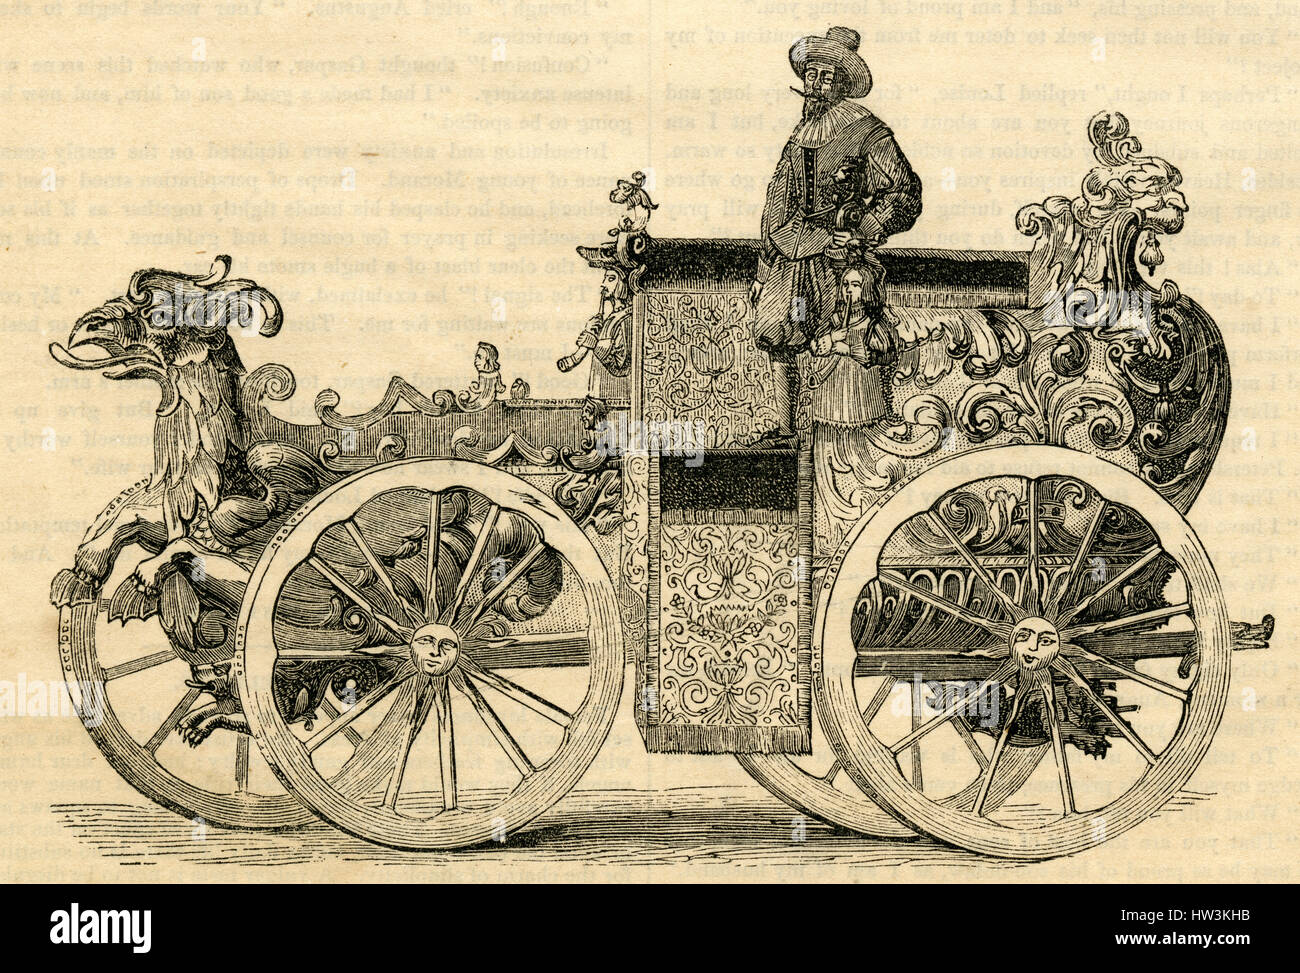 Antique 1854 engraving, 'A German Carriage of the Sixteenth Century.' SOURCE: ORIGINAL ENGRAVING. - Stock Image